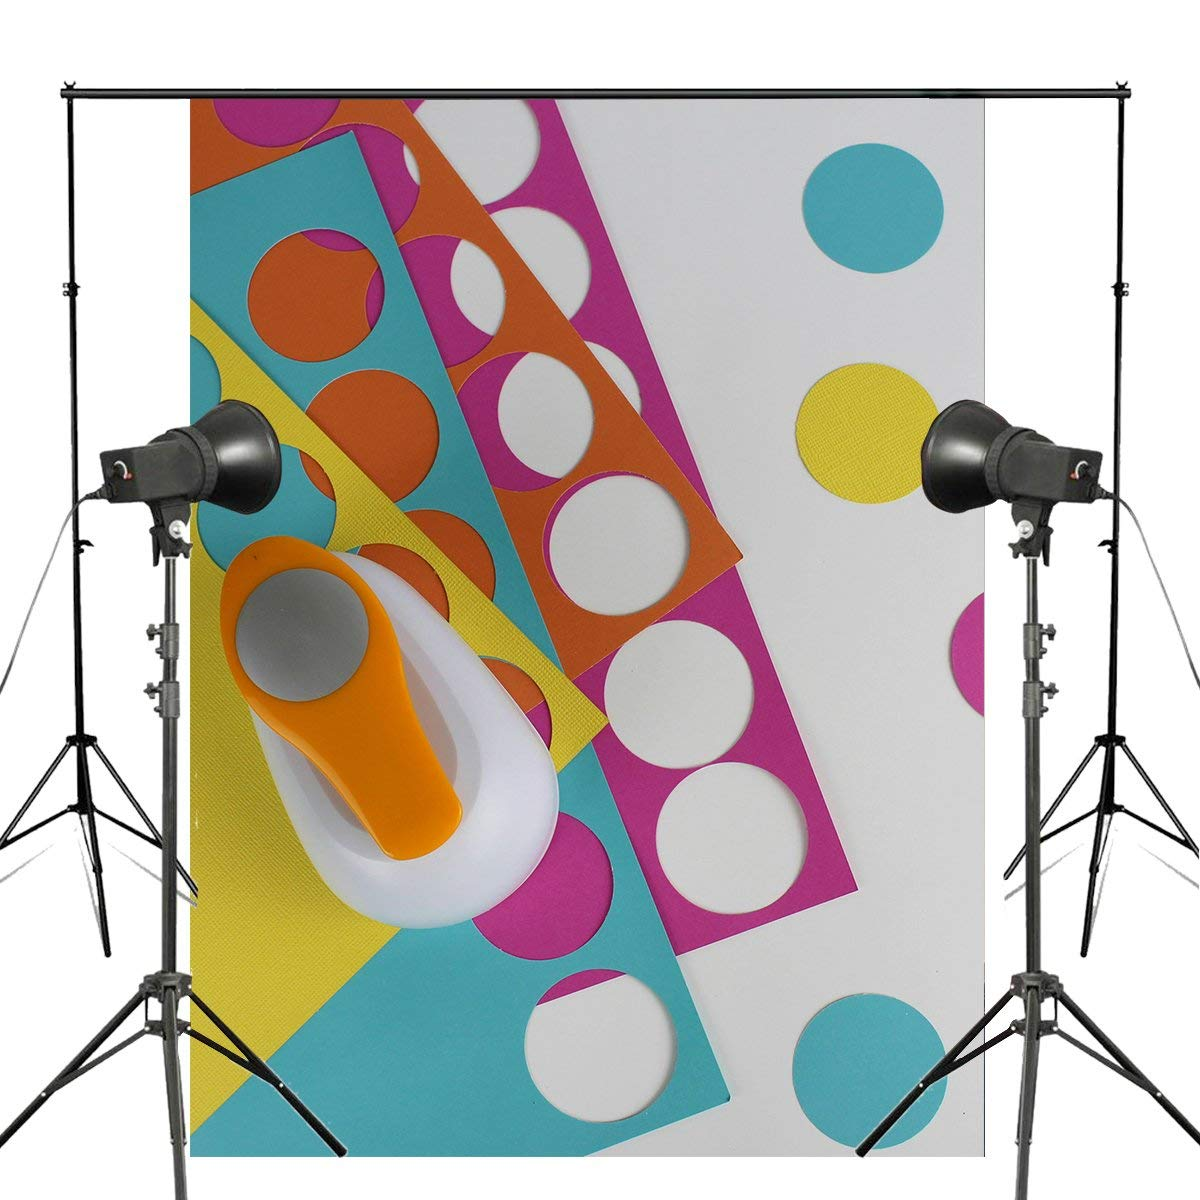 5x7ft Exquisite kids Photography Background Photographic Film Photo Backdrops Theme Photography Background Props Studio-in Photo Studio Accessories from Consumer Electronics